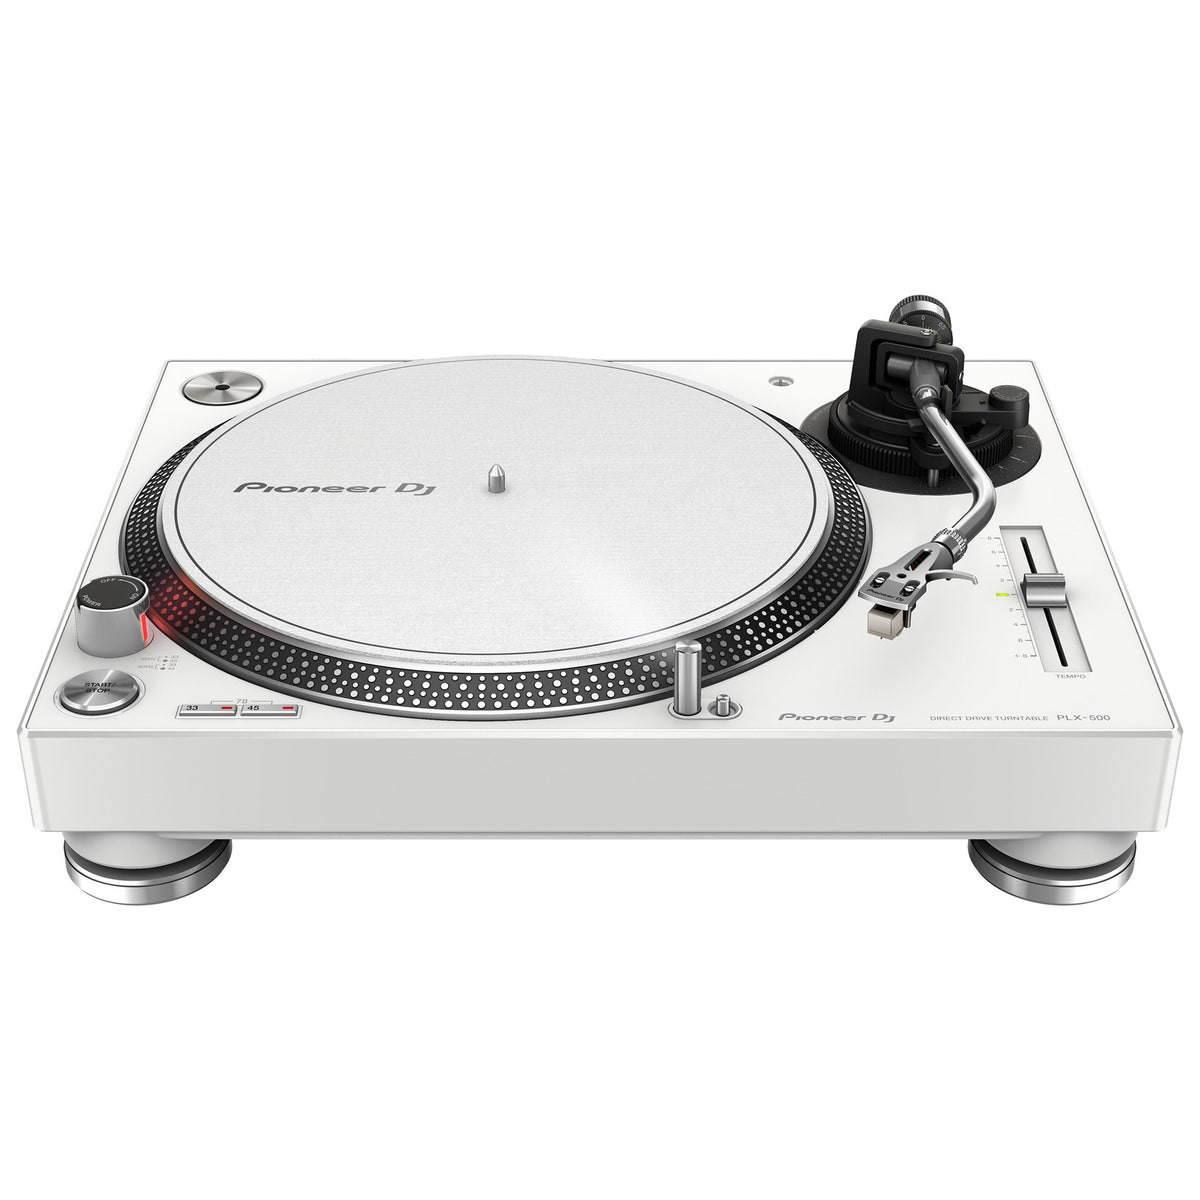 Pioneer plx 500 w direct drive usb turntable white for Direct drive turntable motor